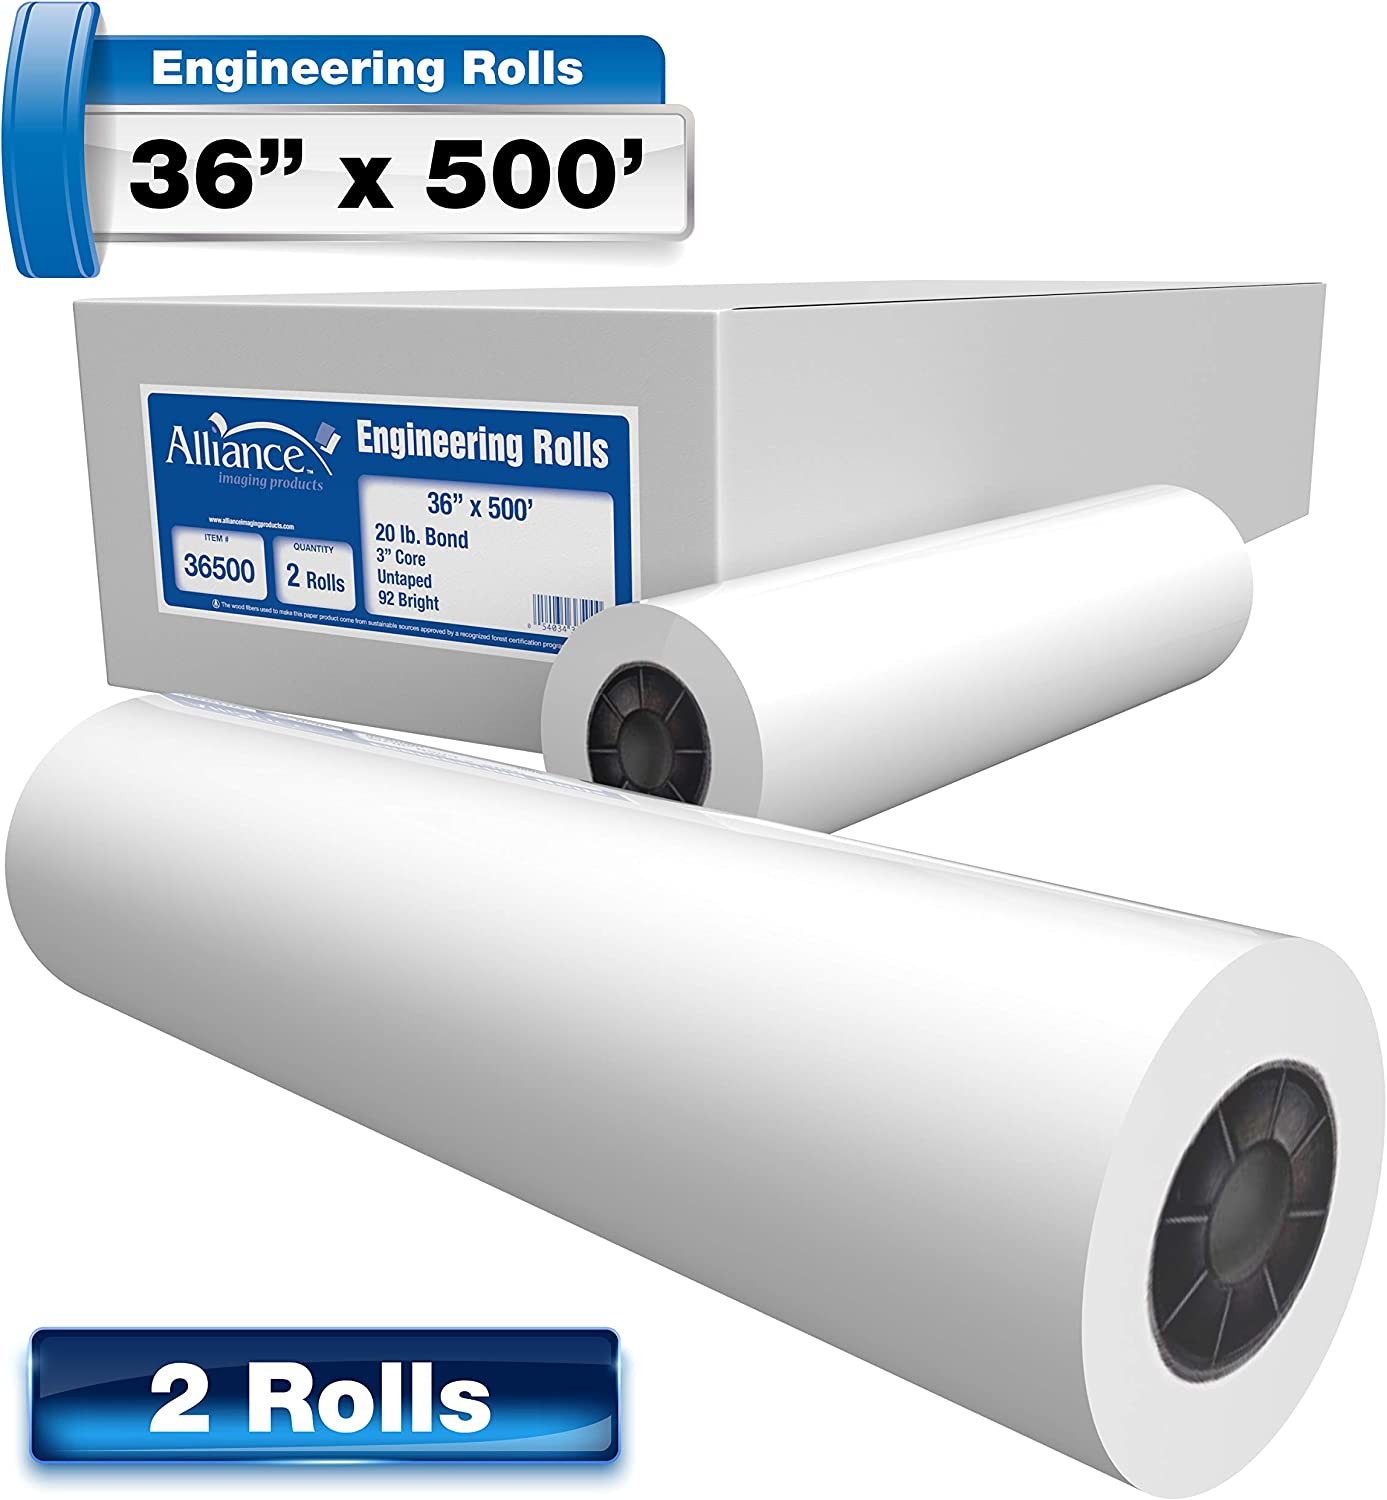 """36 x 150 1 roll//carton 3core with a 2/"""" adapter For Aqueous Latex Printers Alliance High Resolution Wide Format Coated Bond Inkjet Paper 28lb"""